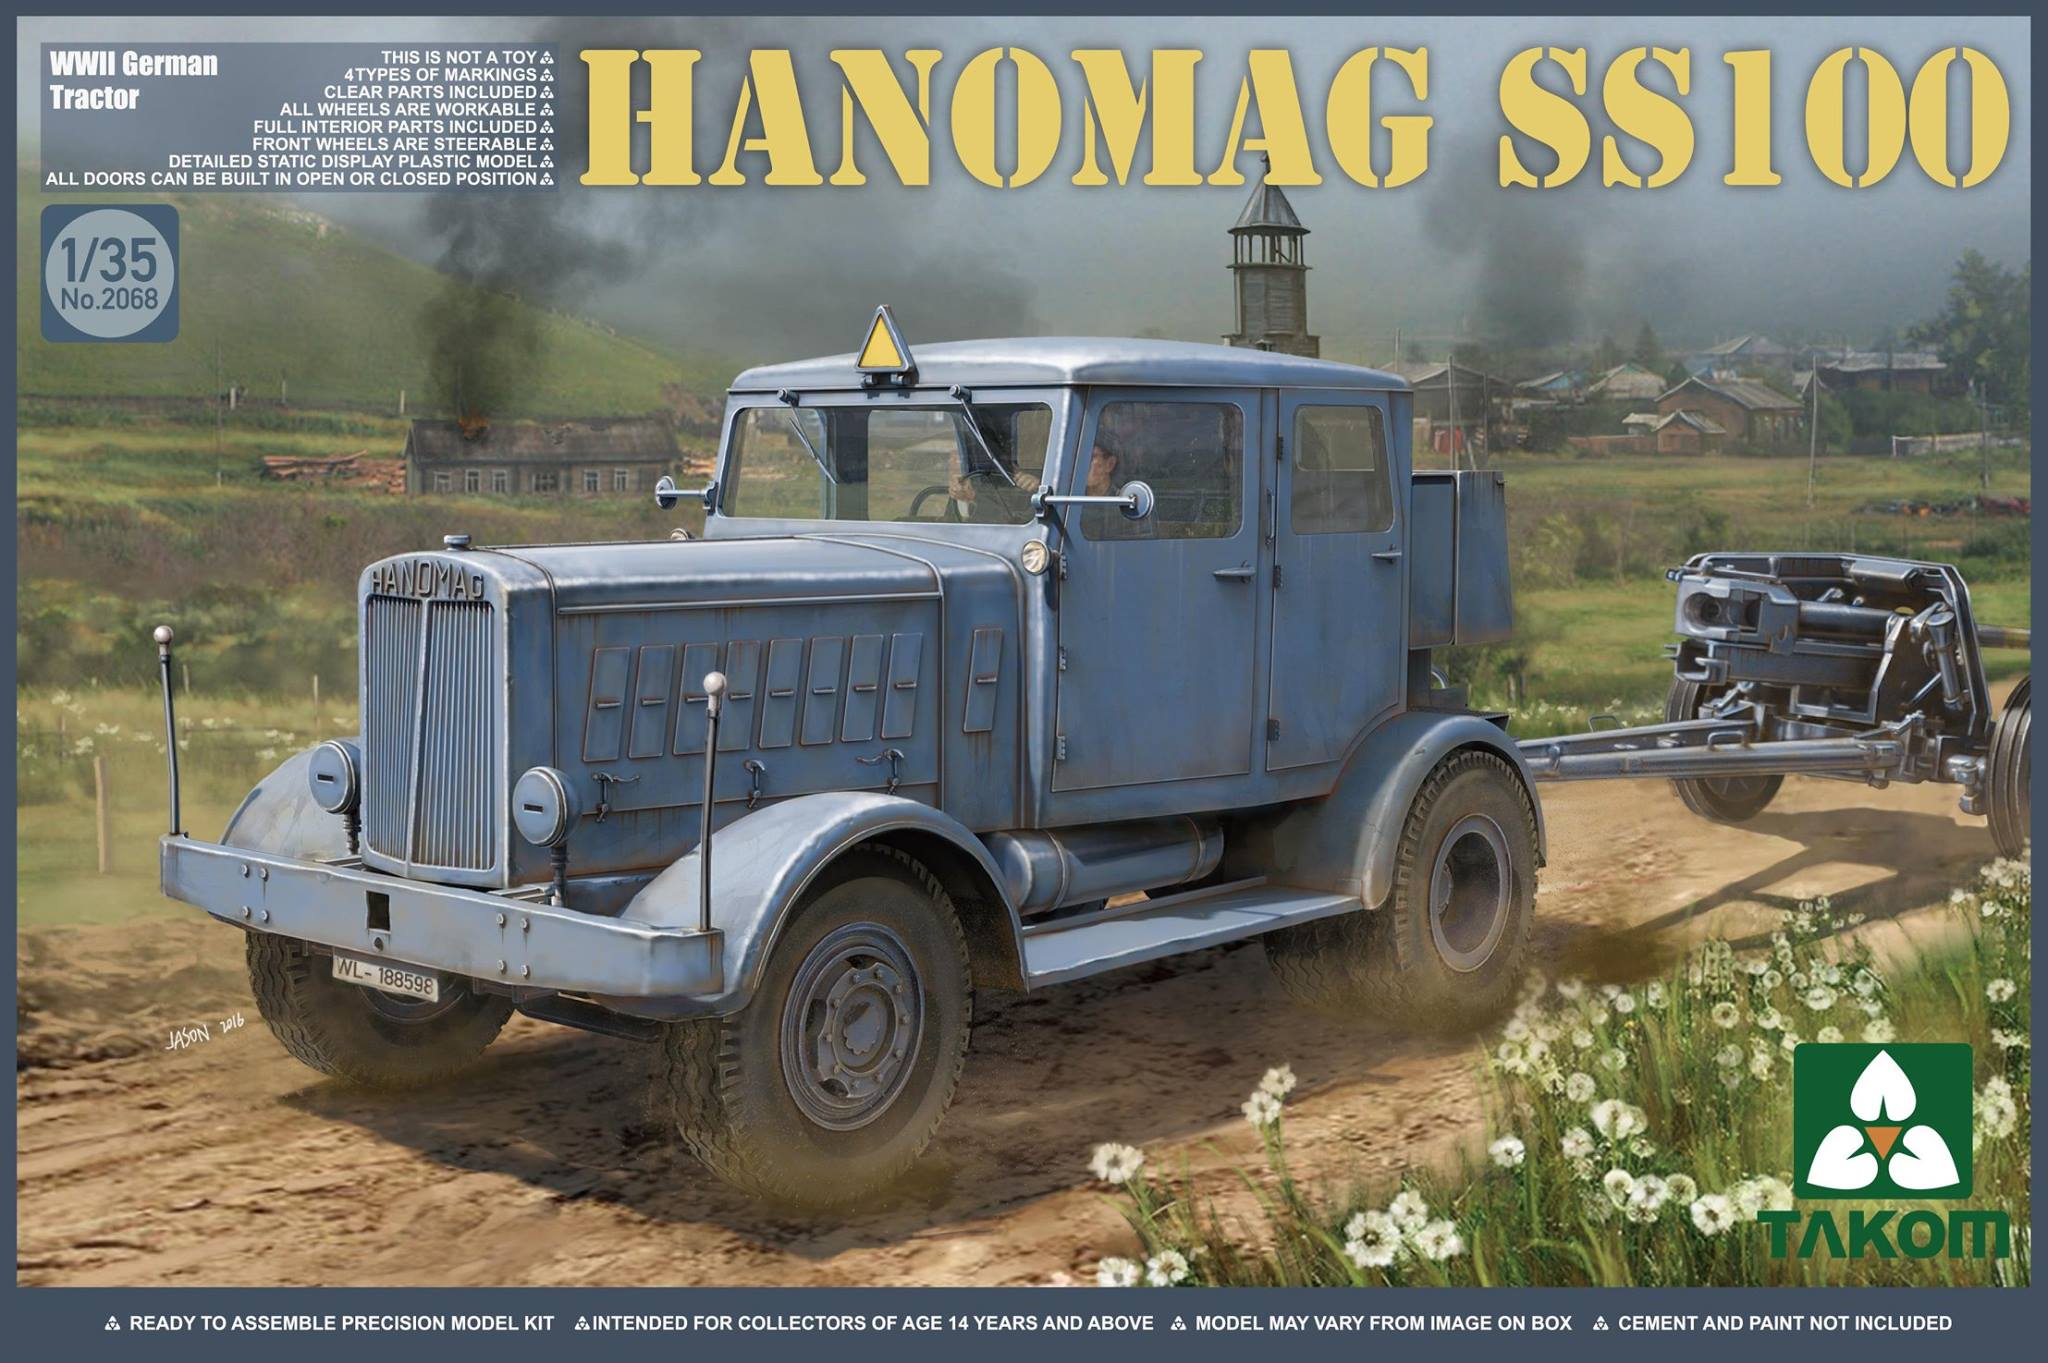 WWII German Tractor Hanomag SS100